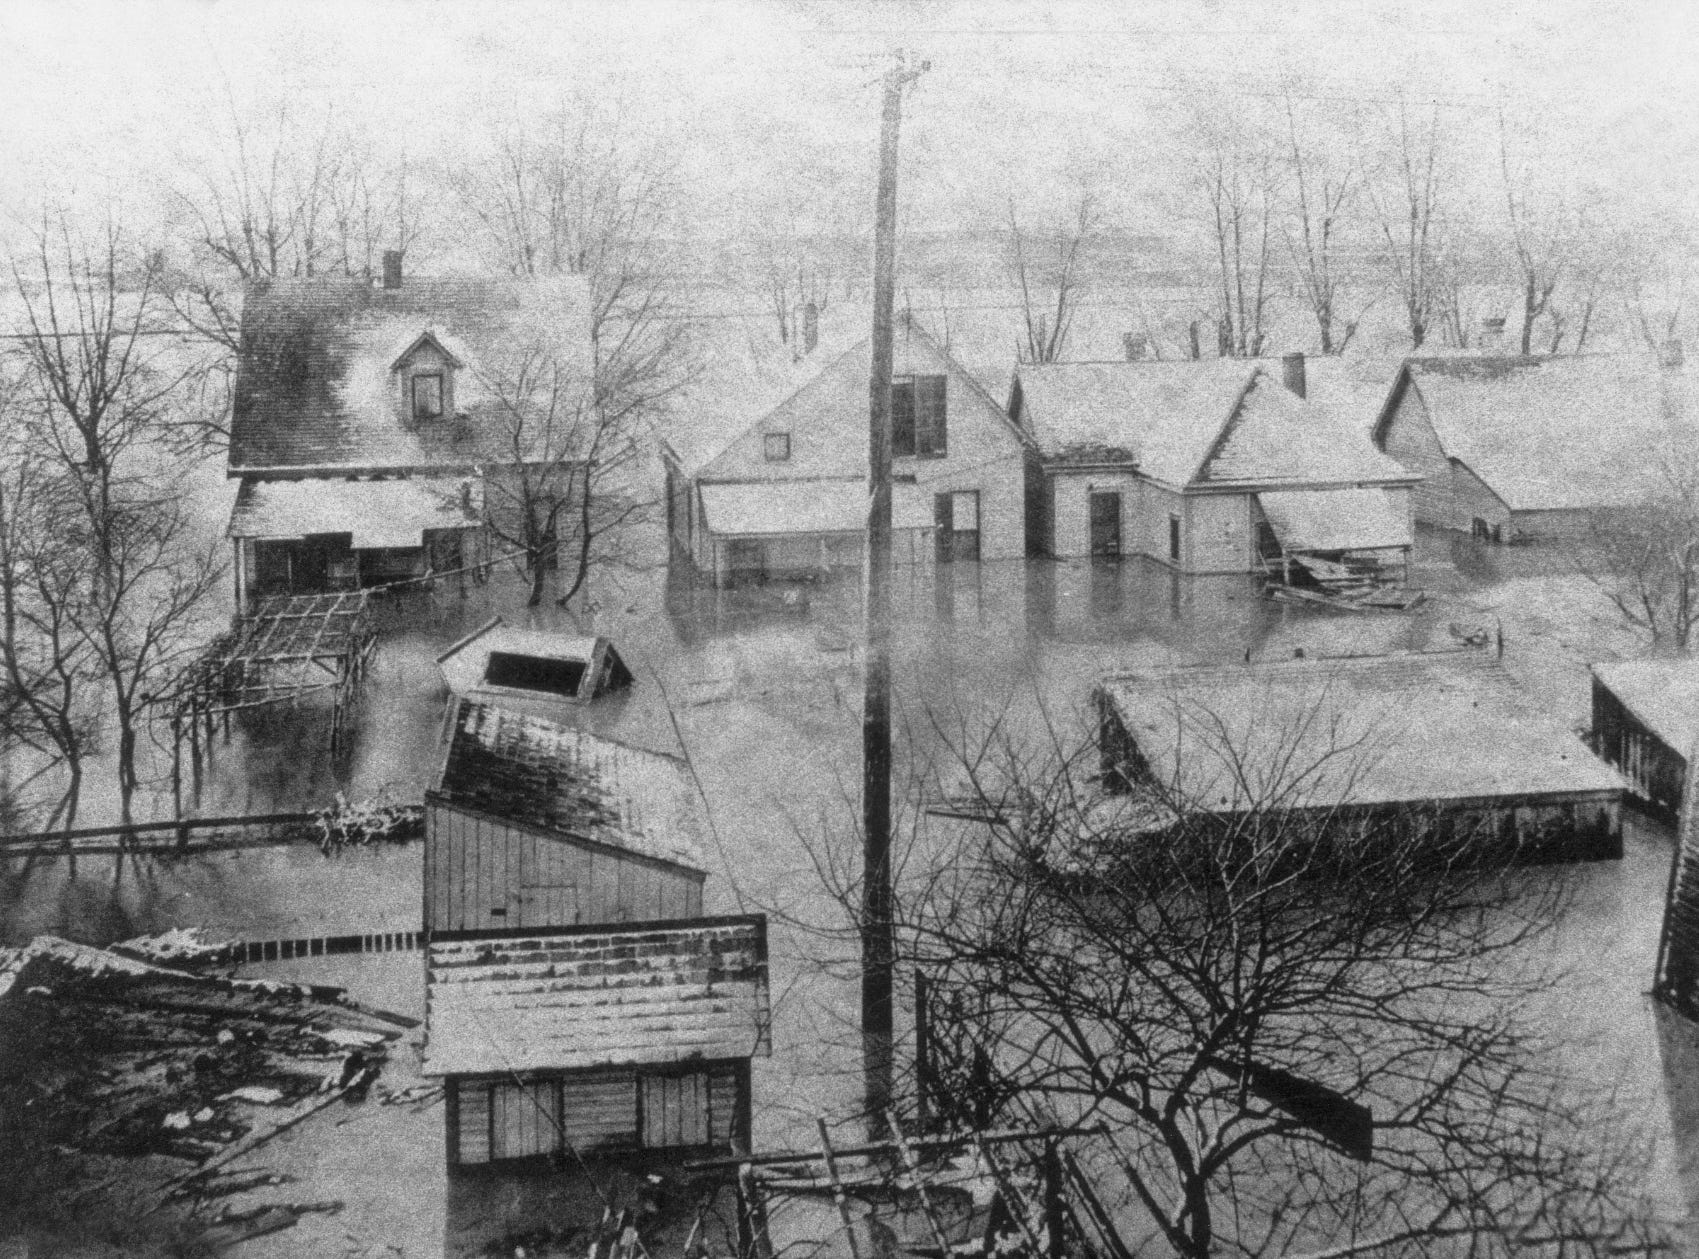 Cold and ice made the Westside a misty no-man's land after the 1913 flood. Photo from 1983 West Indianapolis Neighborhood Congress calendar of the flood which took at least 25 lives and damaged 10,000 homes.